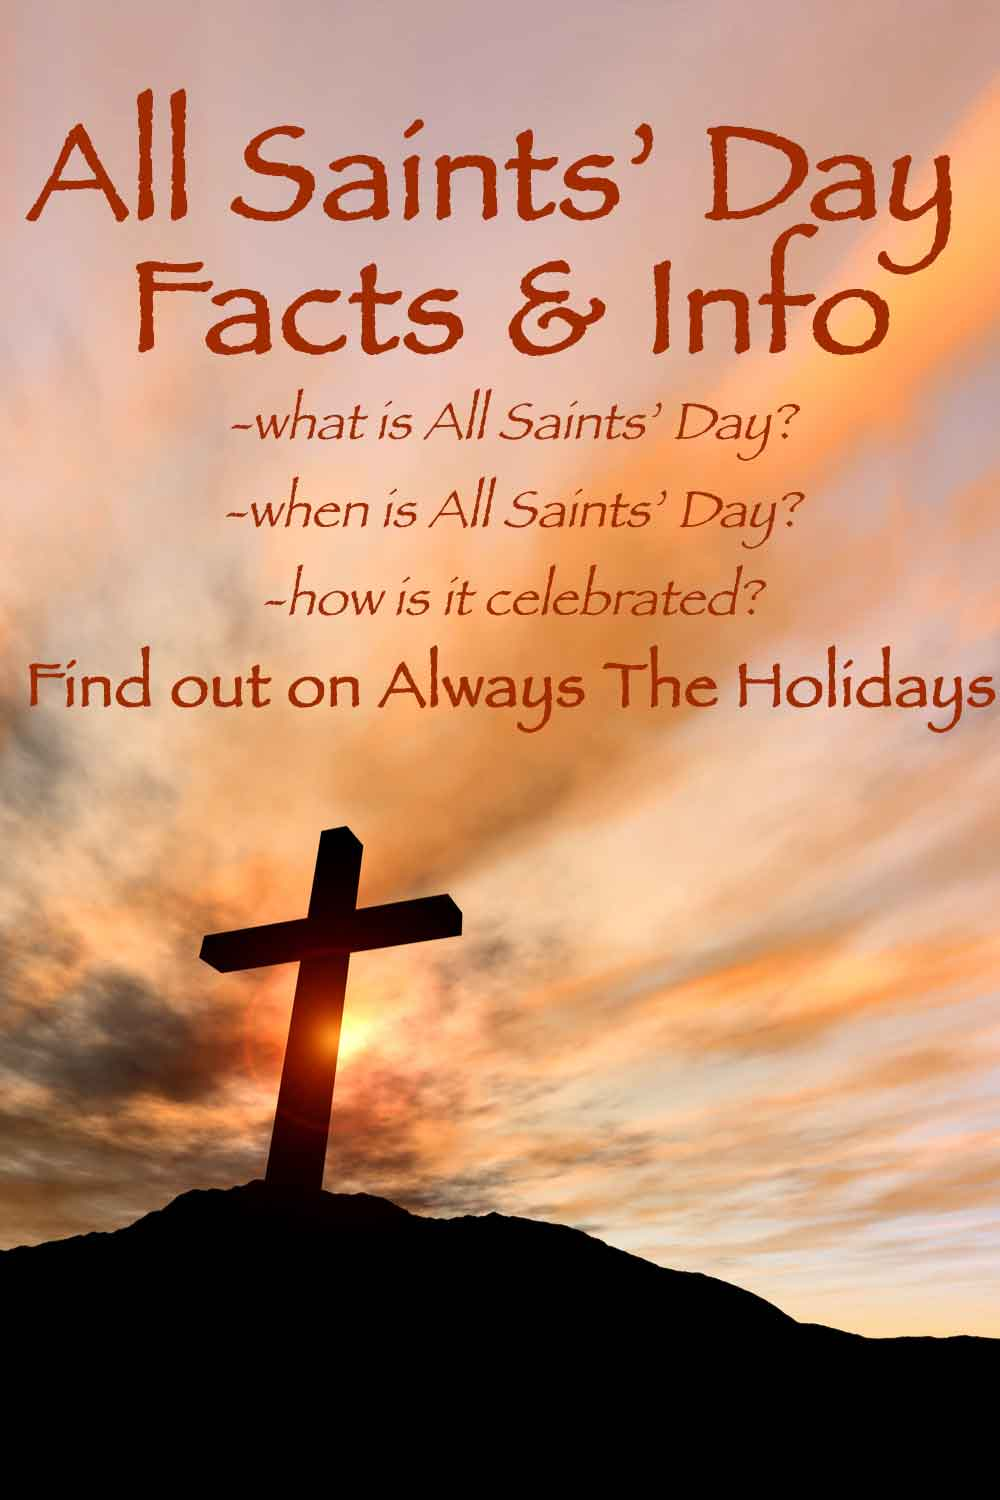 """A cross on the top of a mountain against the sunset with text that reads """"All Saints' Day Facts & Info - what is All Saints' Day, when is All Saints' Day, how is it celebrated?""""."""